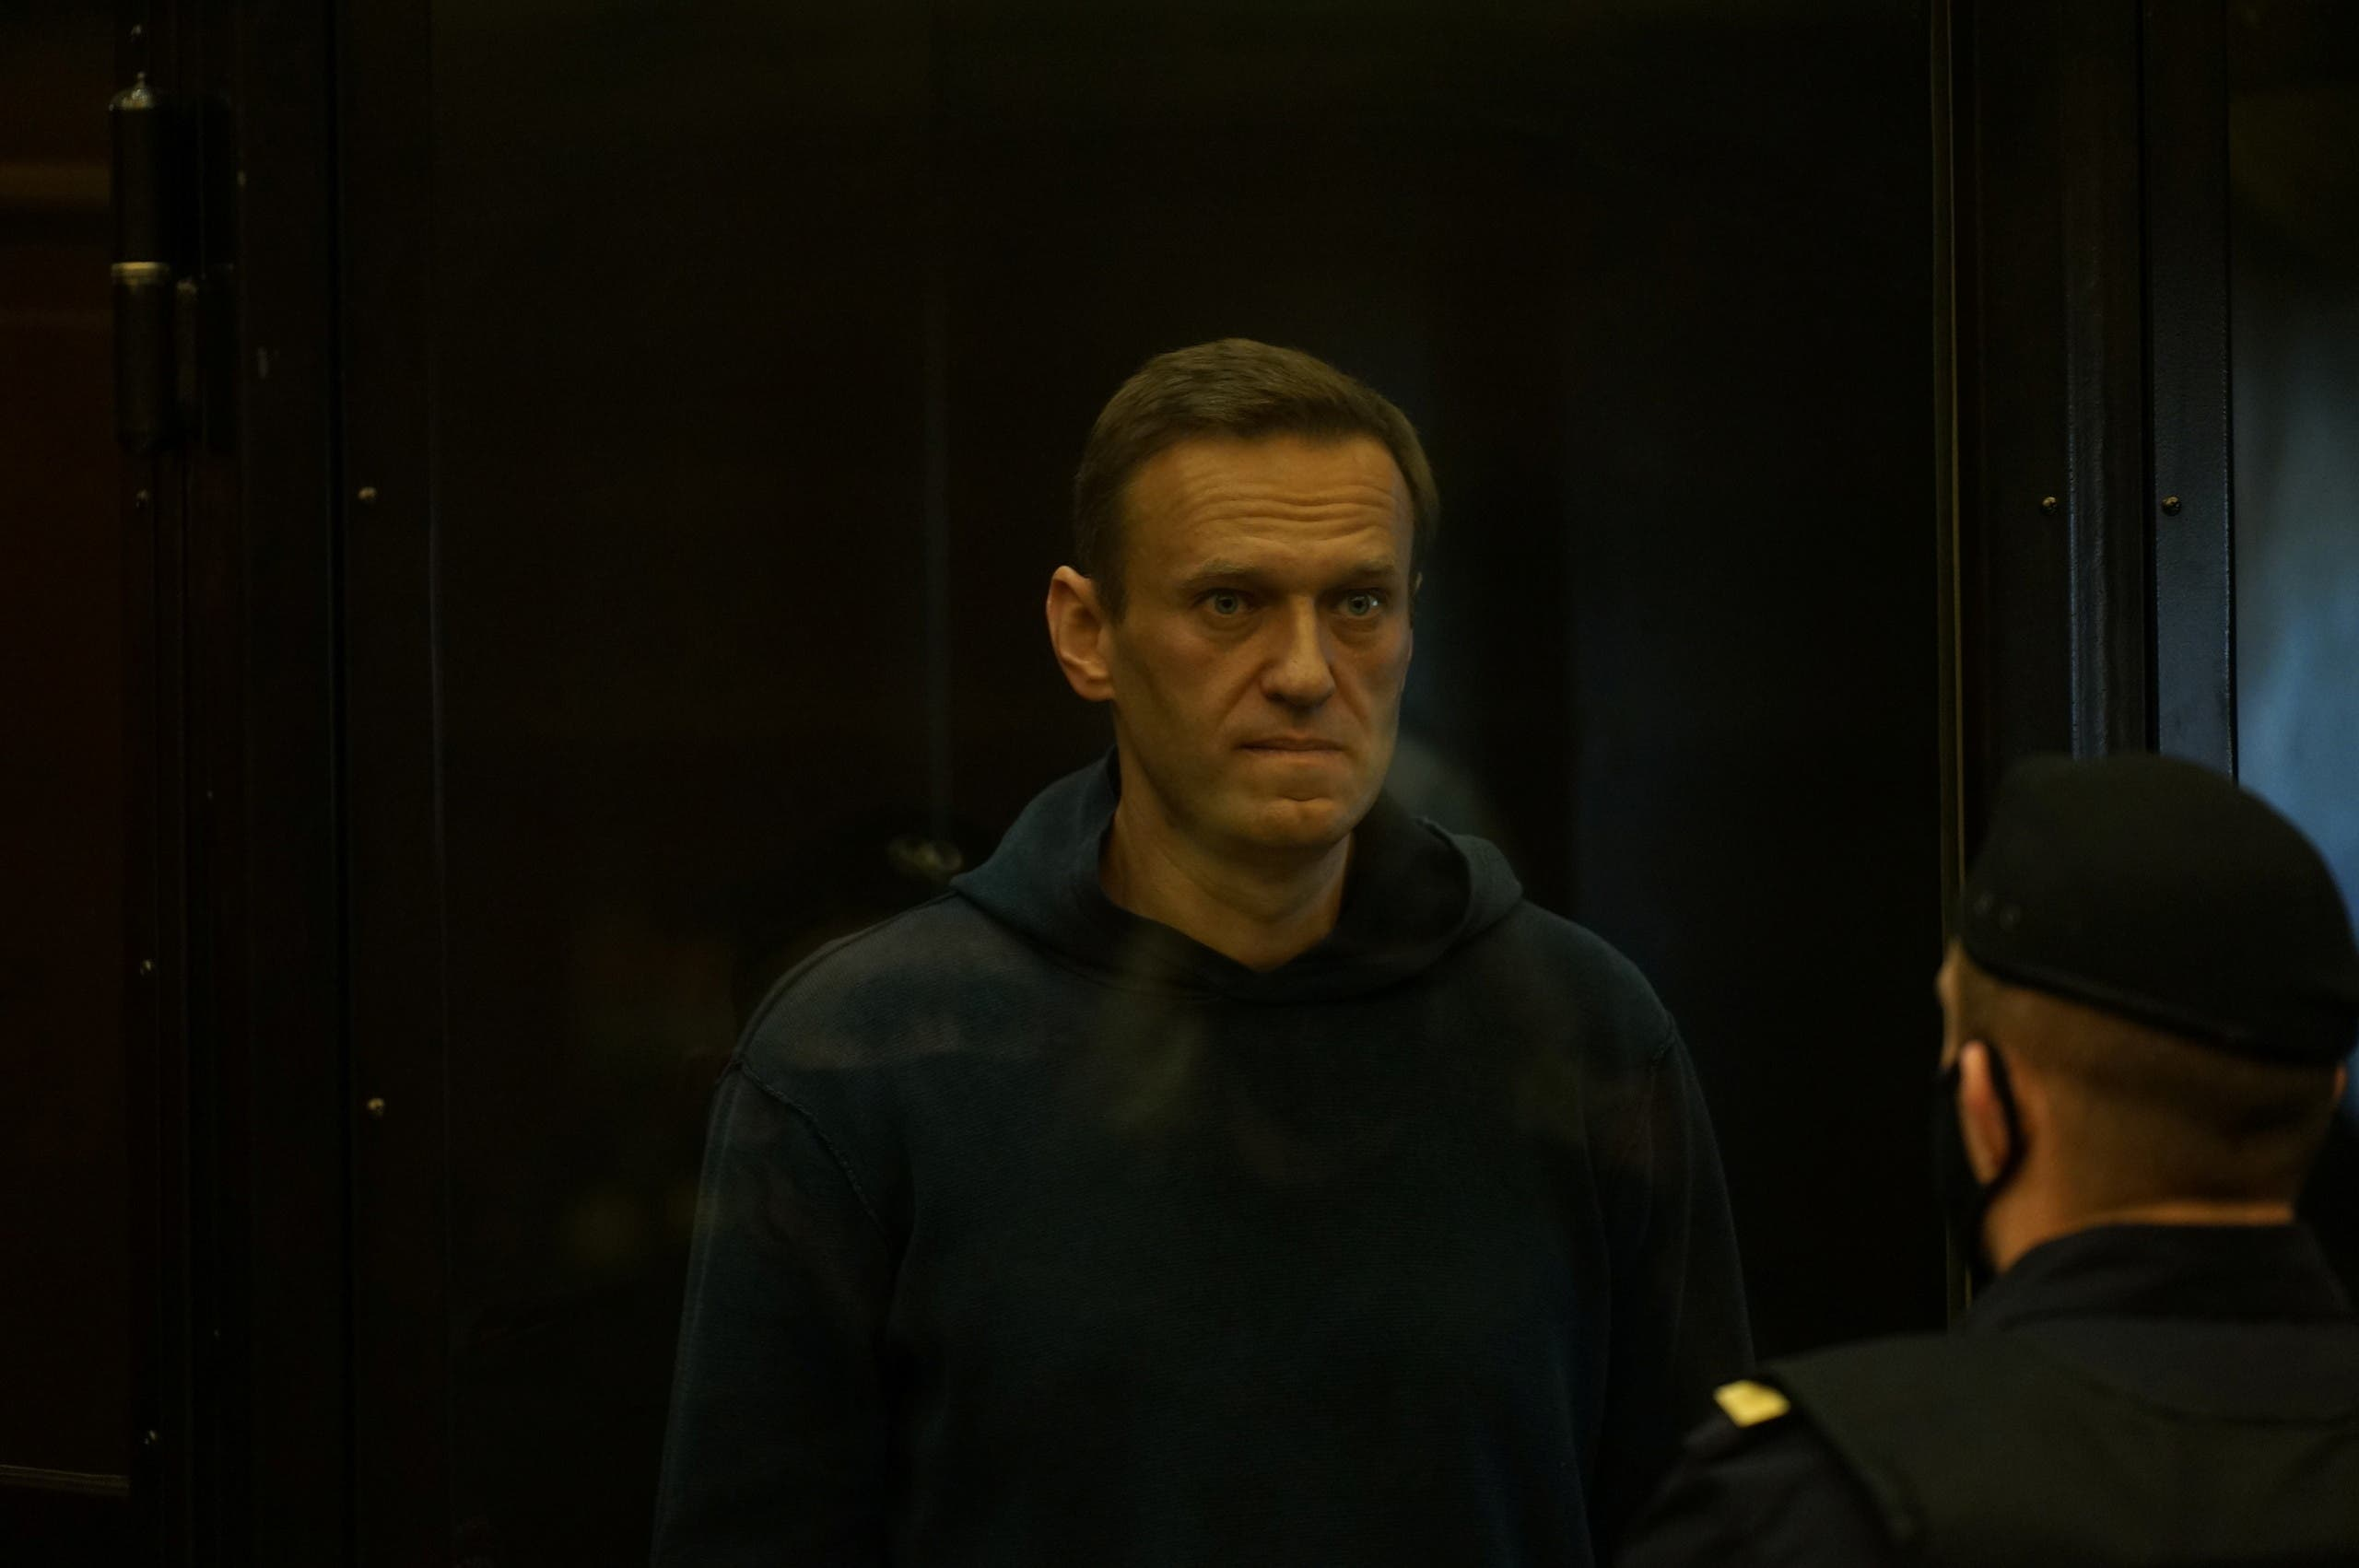 Russian opposition leader Alexei Navalny accused of flouting the terms of a suspended sentence for embezzlement attends a court hearing in Moscow, Russia February 2, 2021. (Reuters)